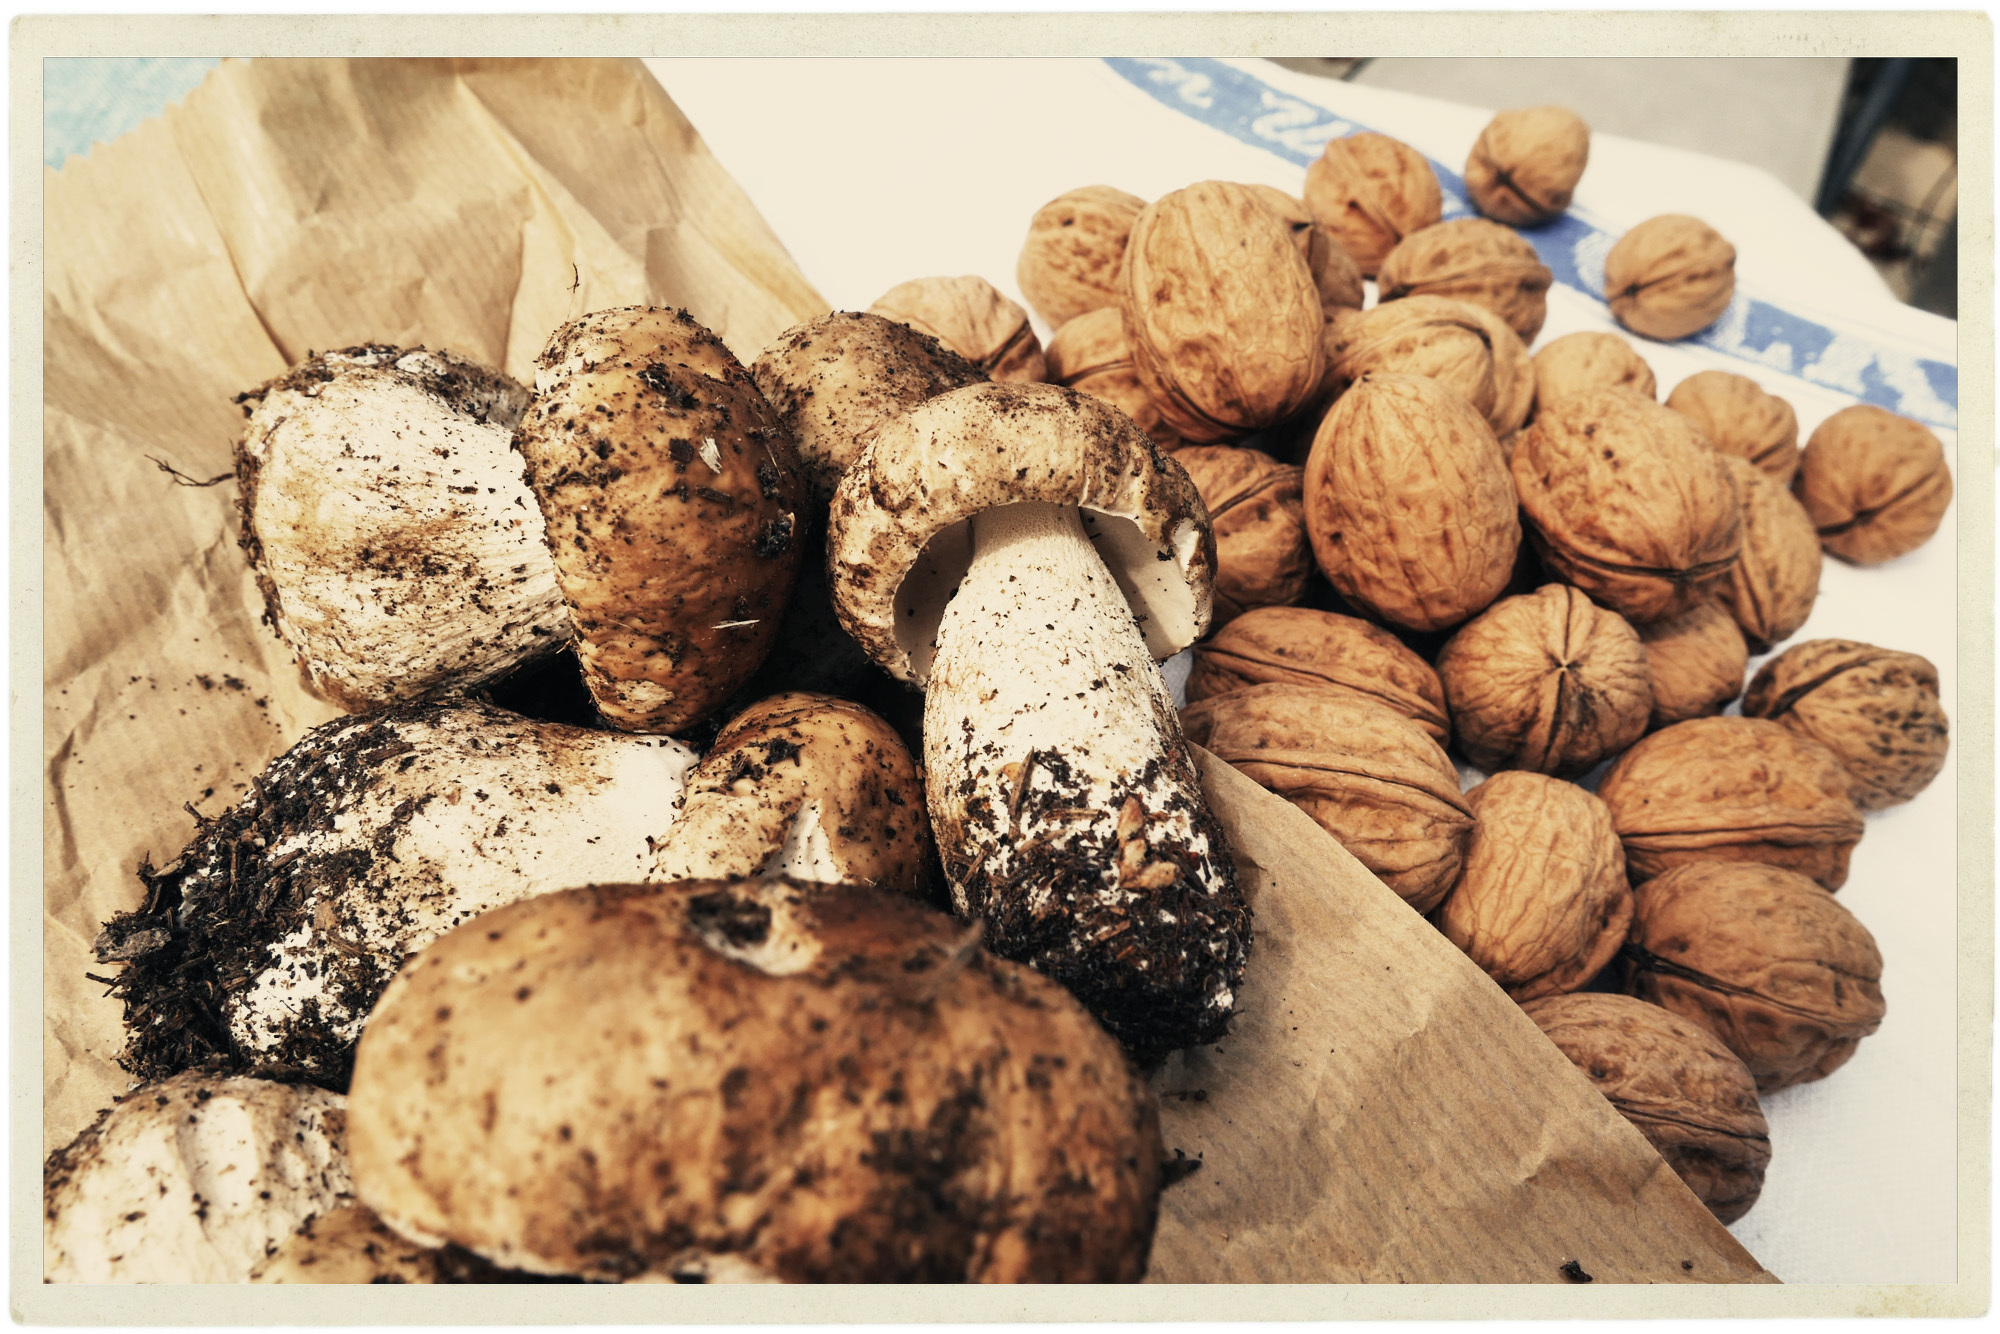 Autumn in Provence means walnuts and cèpes.